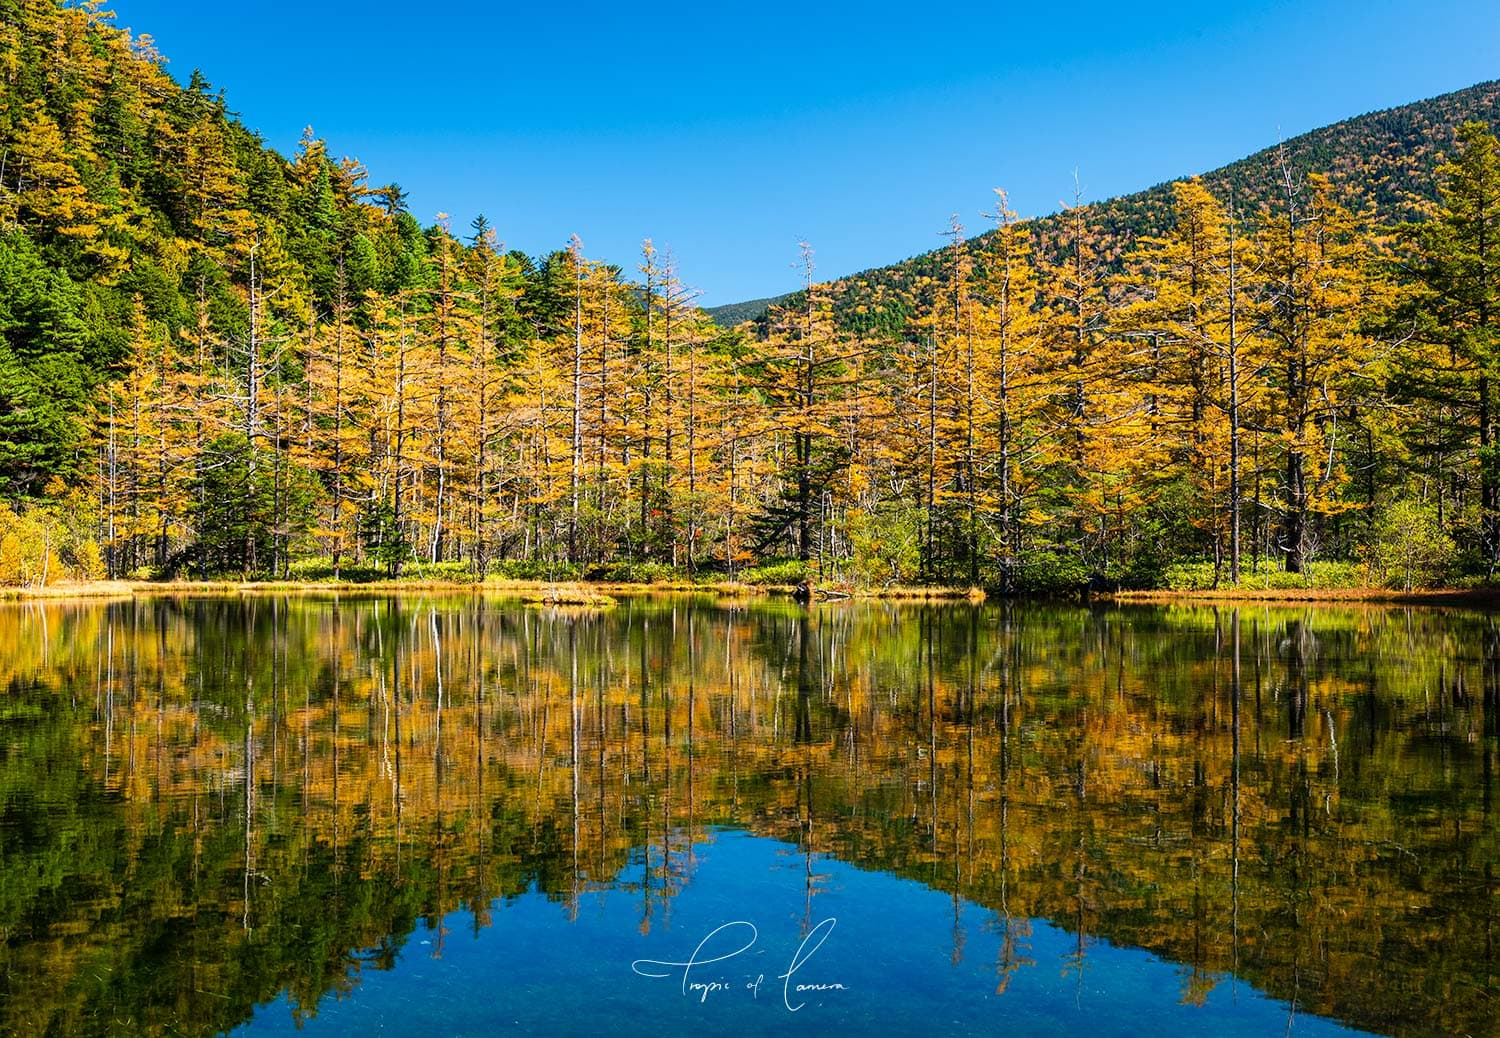 Reflections on Myojin Pond in Kamikochi, Japan